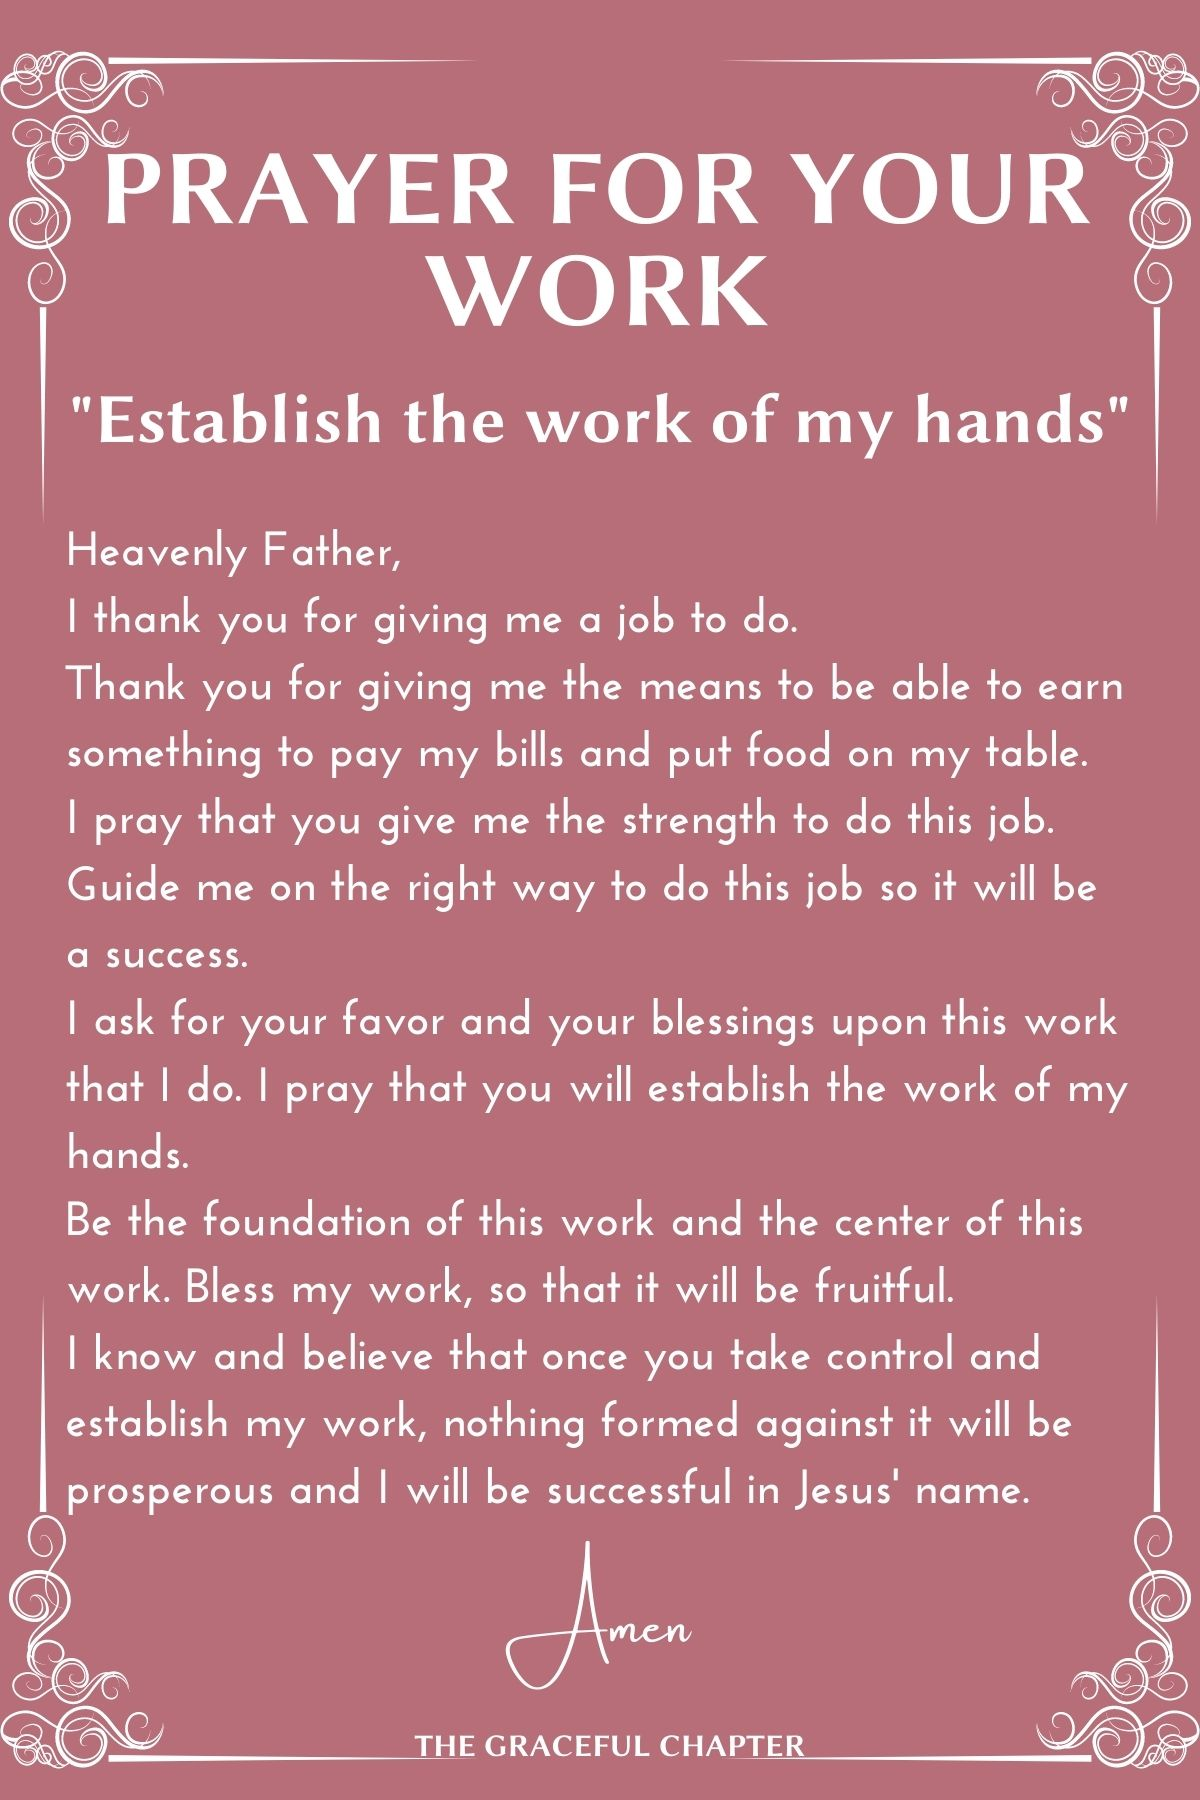 Prayer for your work - Establish the work of my hands